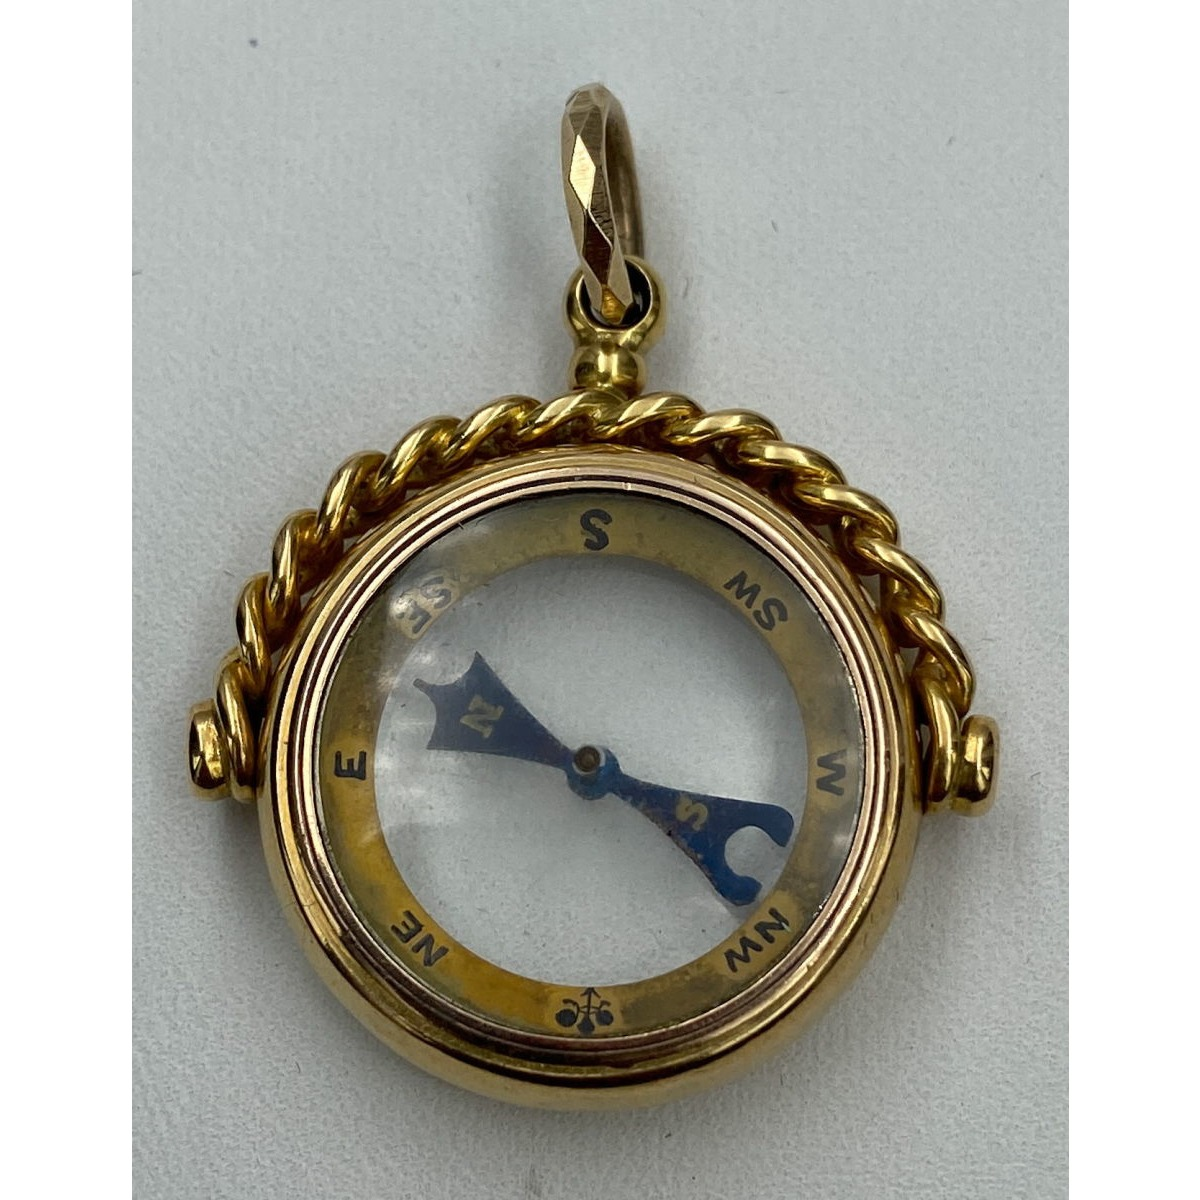 Stunning Large, Bold 15 karat Gold Antique Compass Watch Fob